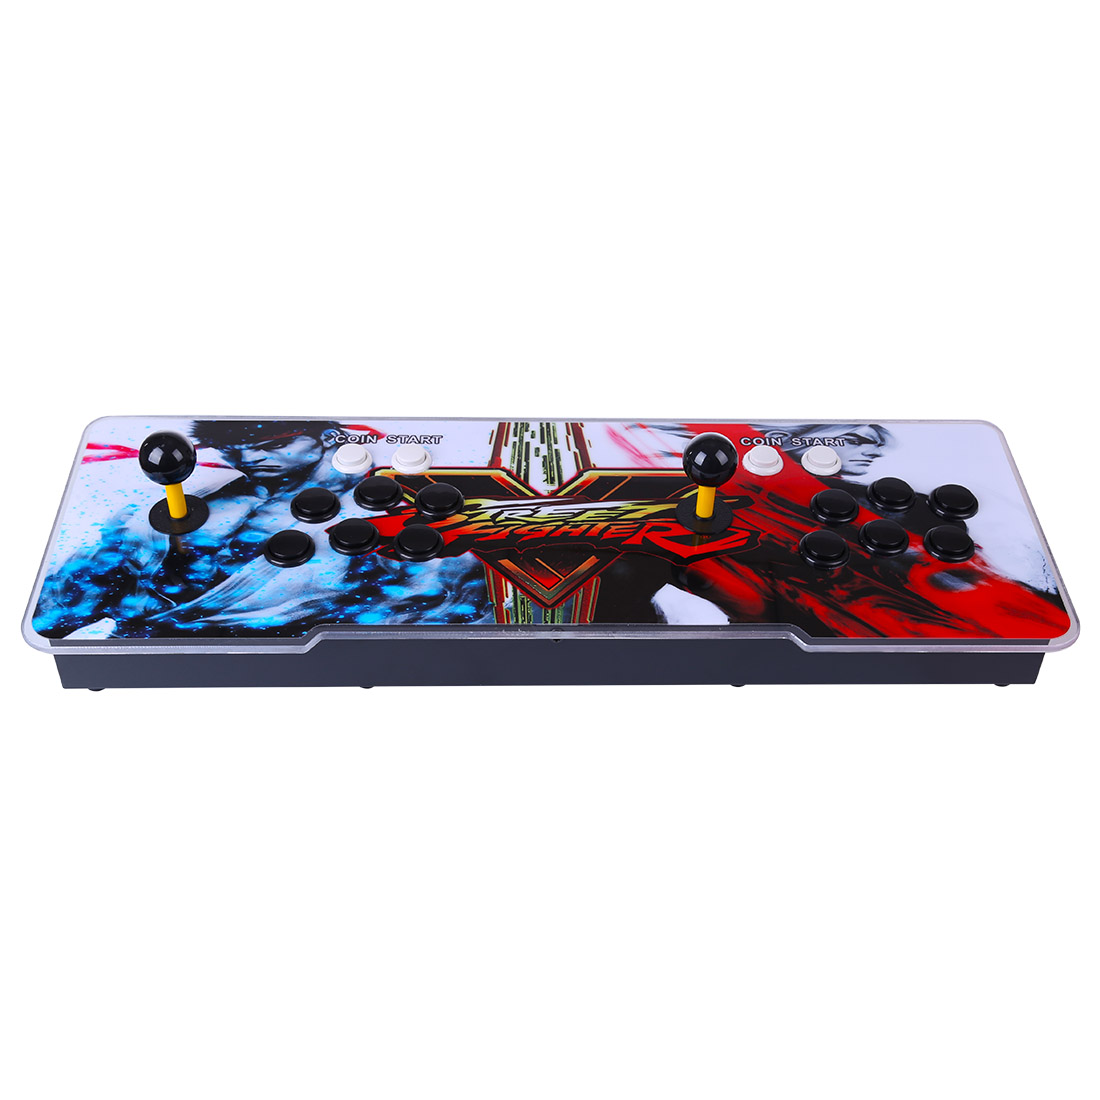 Pandora Box 3D 12S 3333 Games Multi-player Arcade Game Console (Artwork: Street Fighter V) (Metal Body)